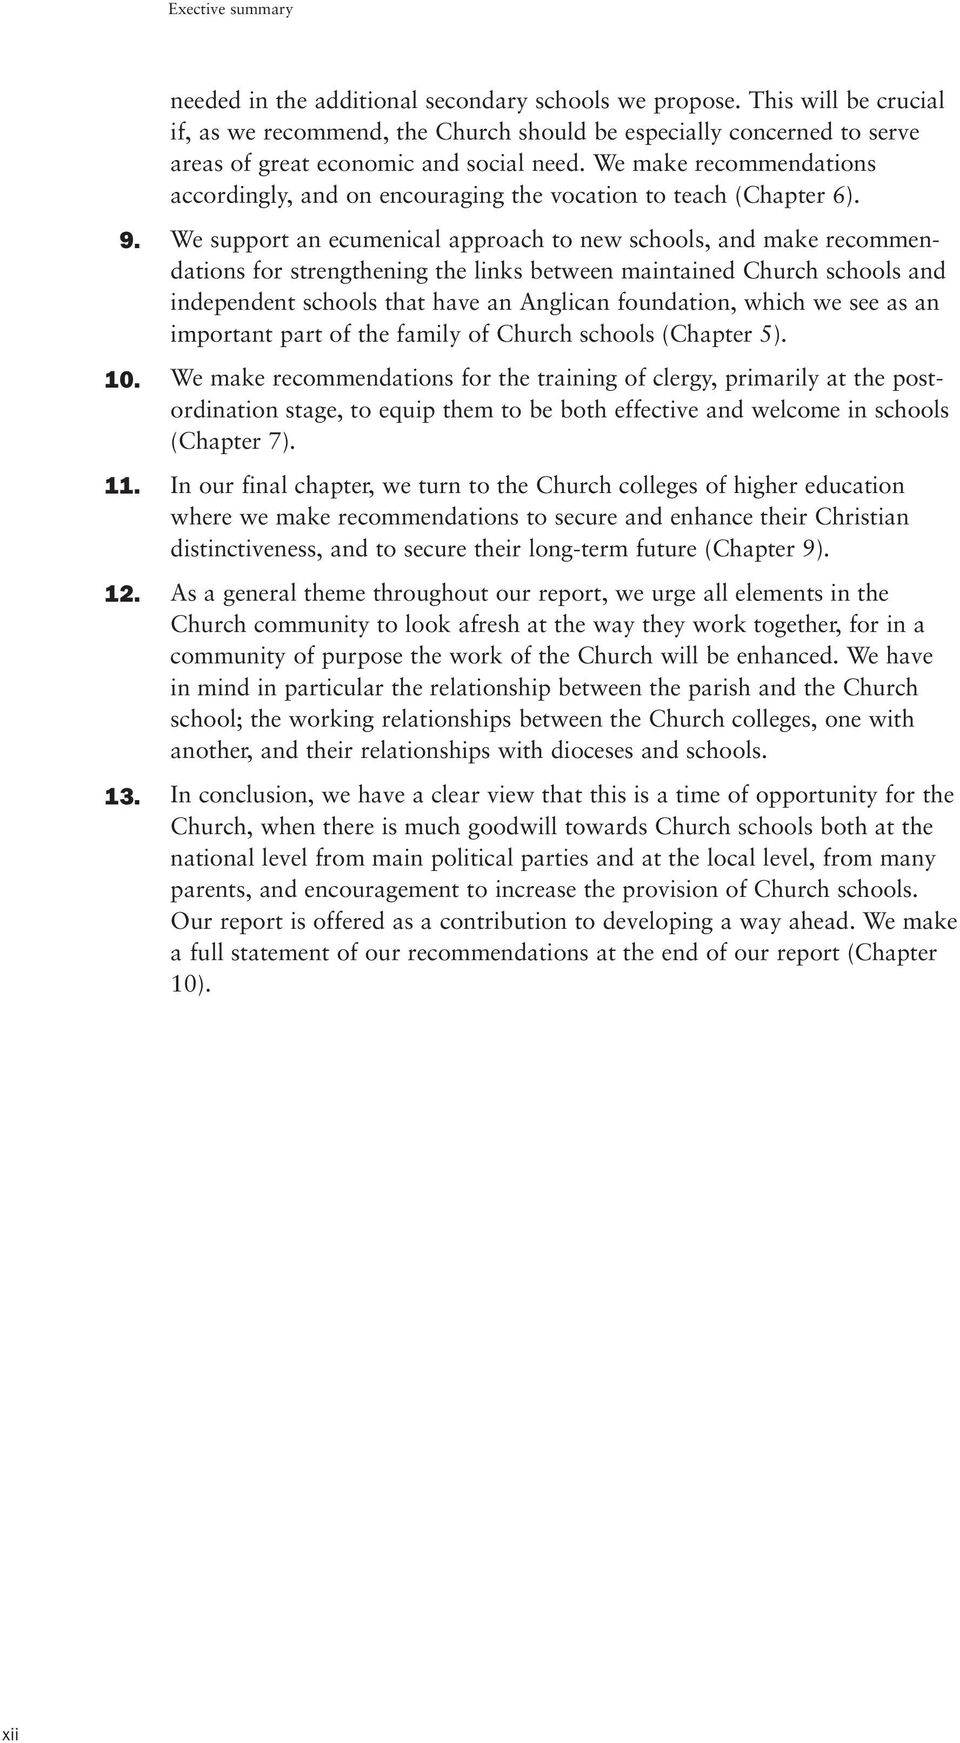 We make recommendations accordingly, and on encouraging the vocation to teach (Chapter 6). 9. 10. 11. 12. 13.